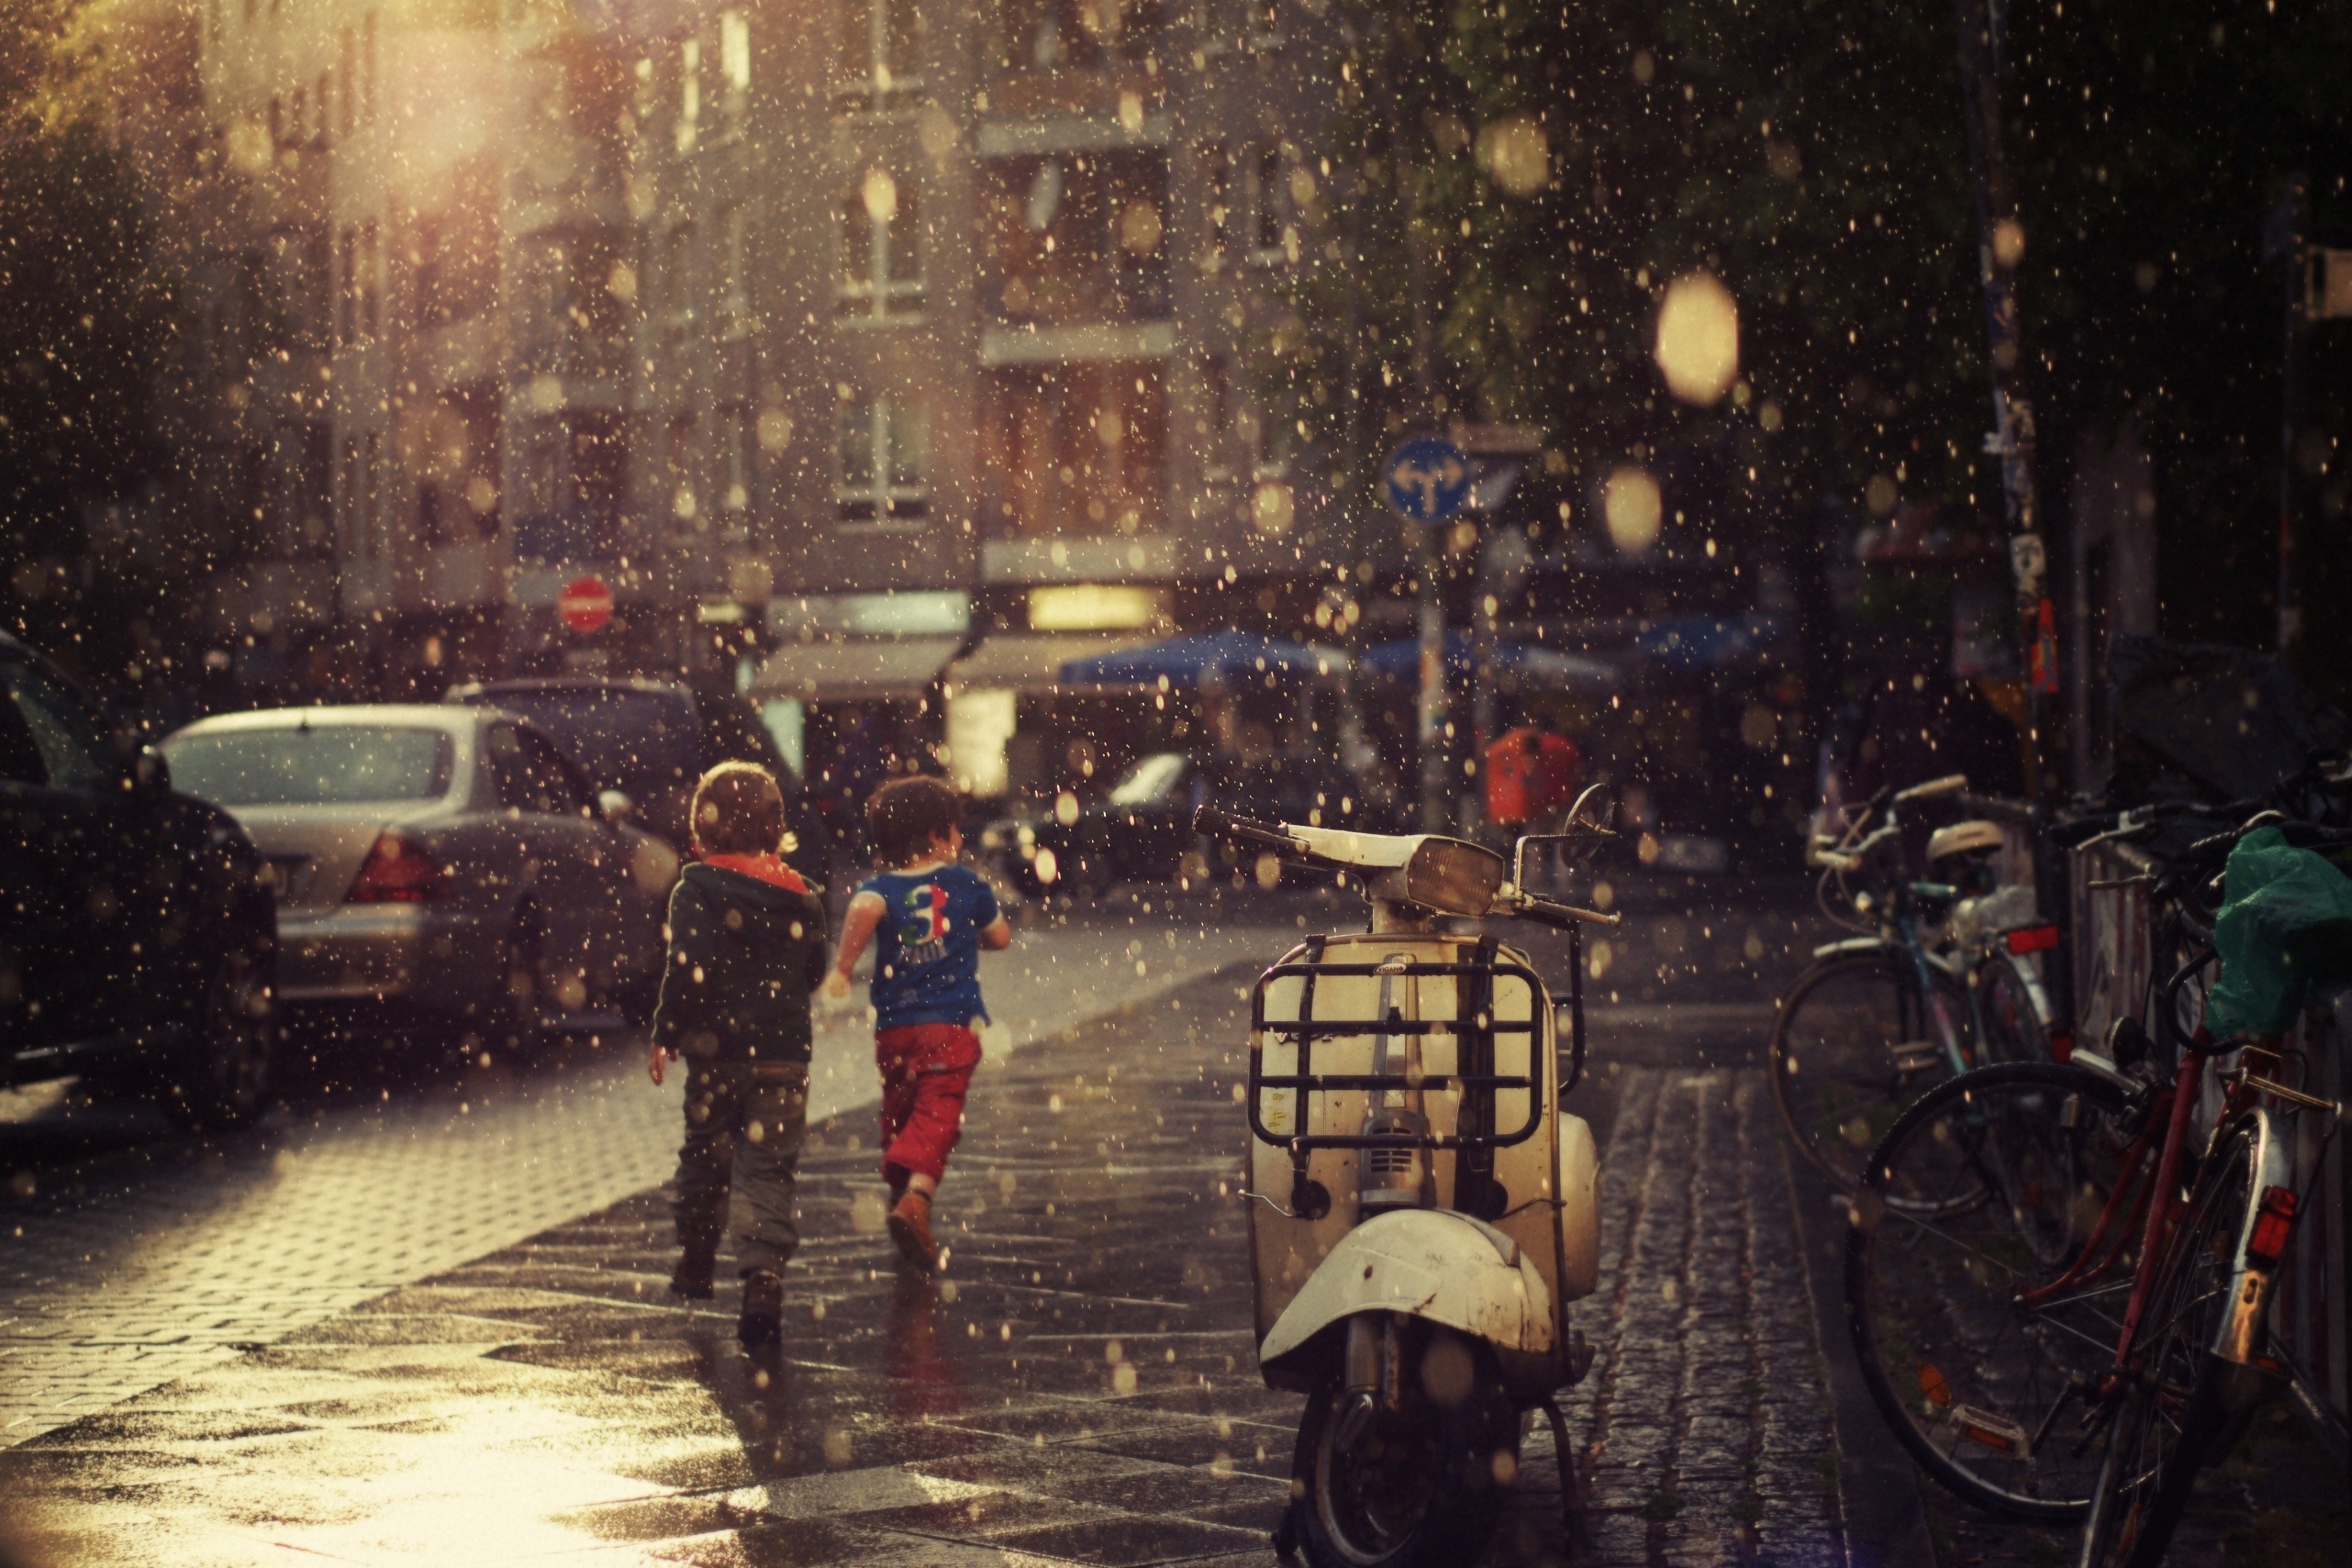 rain rain-drops water-drops drops children people vehicles scooters motorcycles places cities architecture buildings photography roads